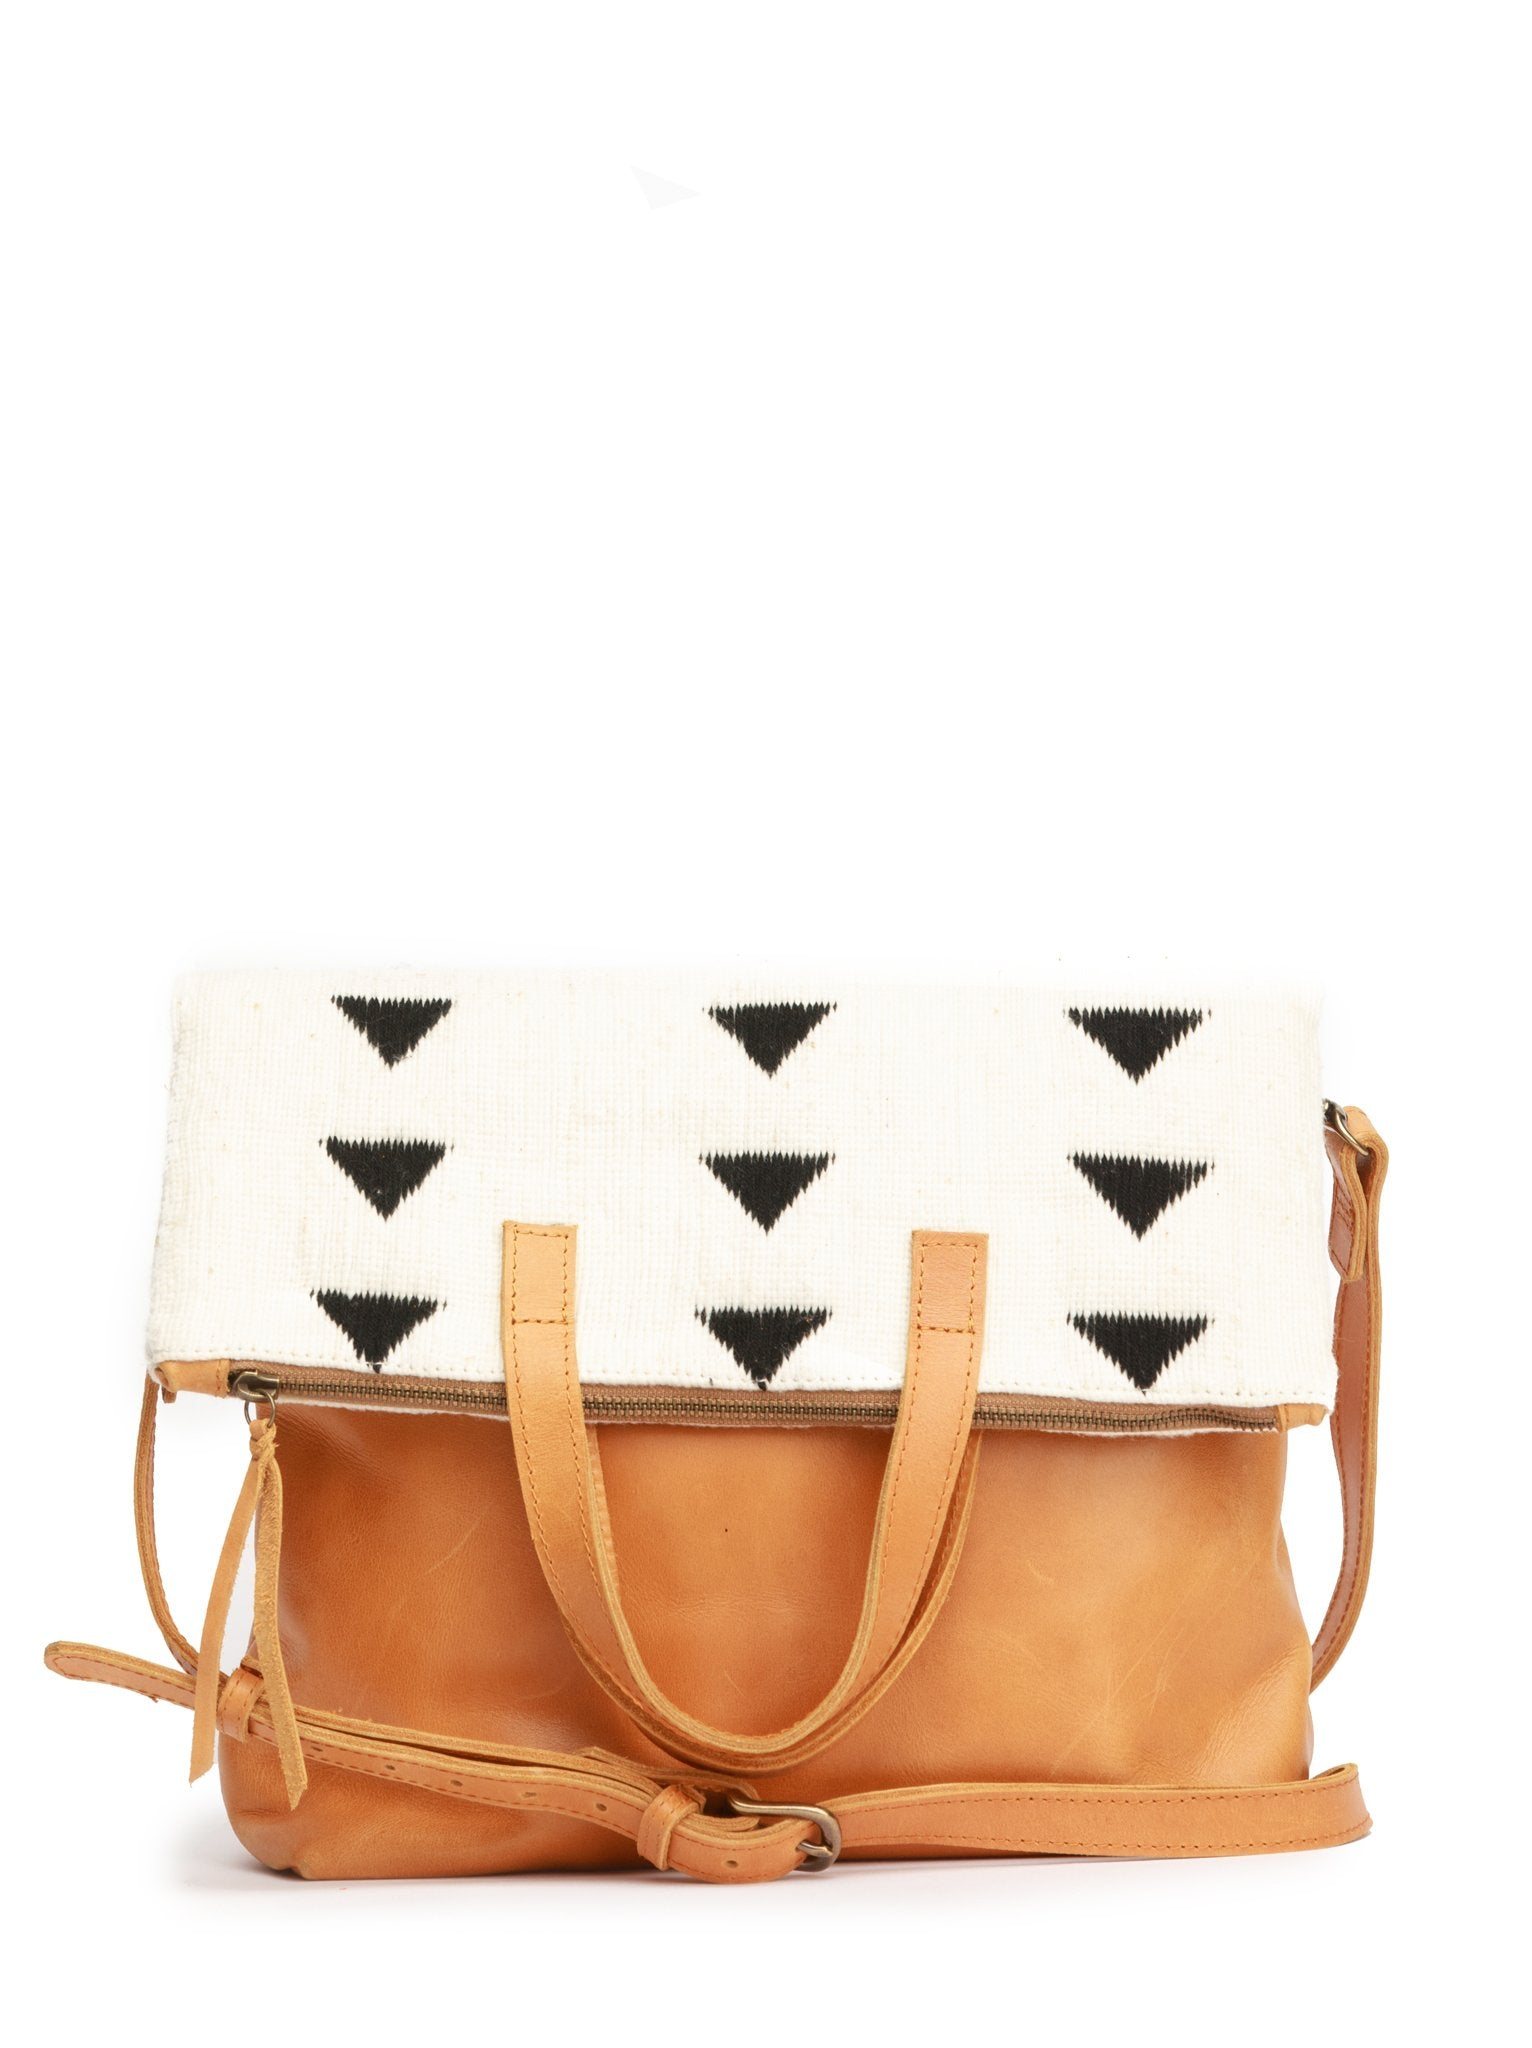 Emnet Foldover Tote